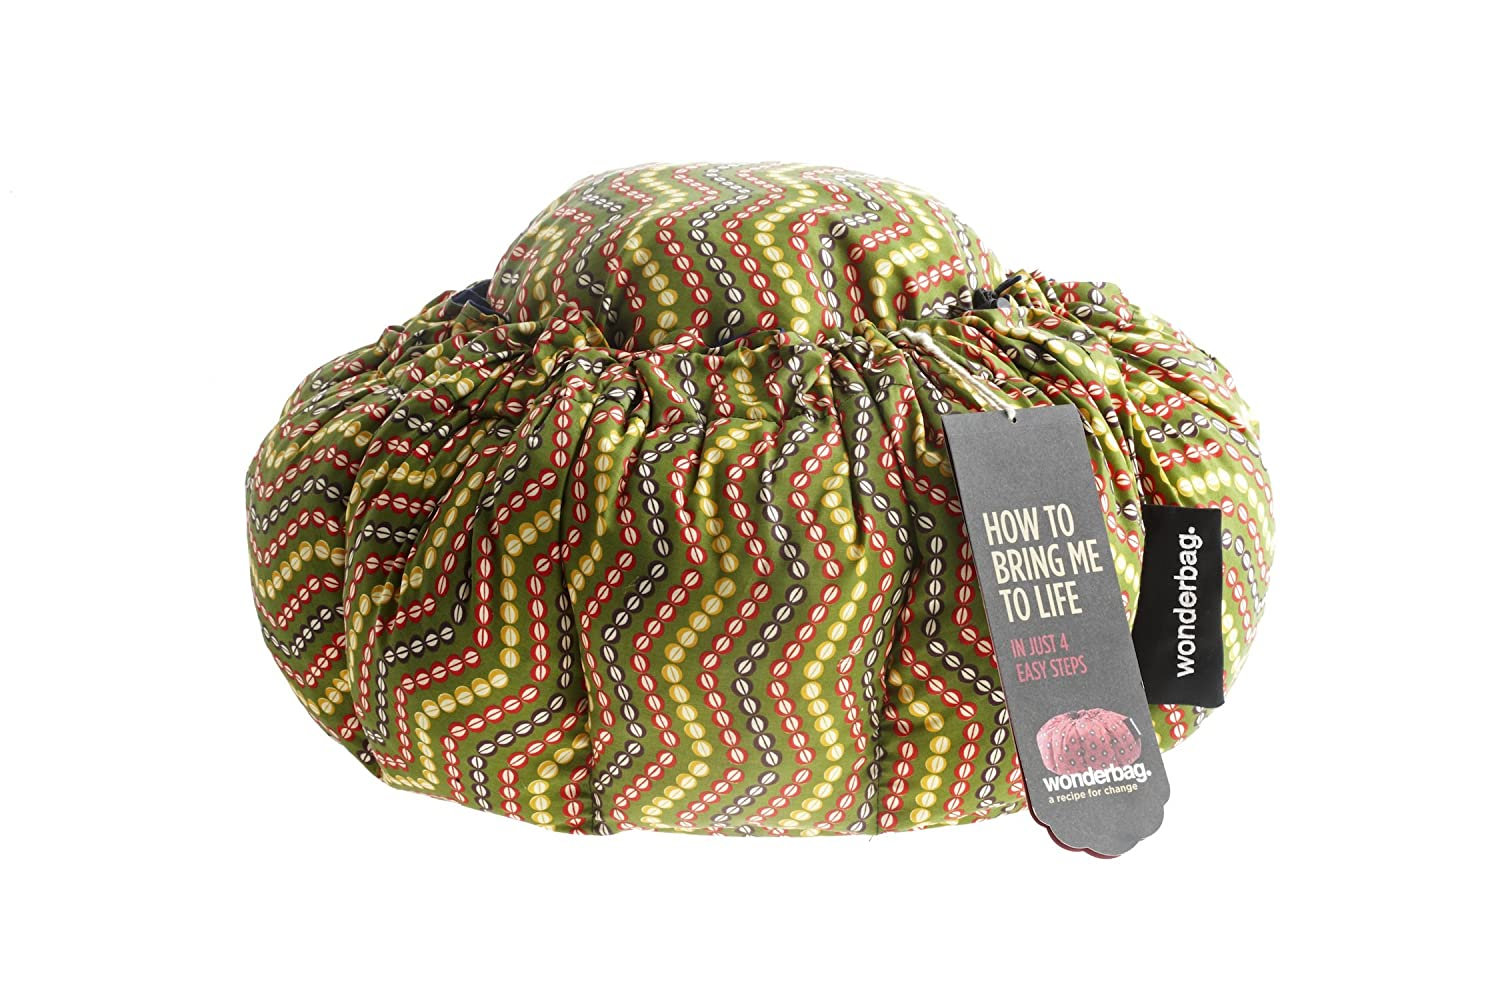 Wonderbag Portable Insulated Non Electric Slow Cooker Pot Carrier Chiller